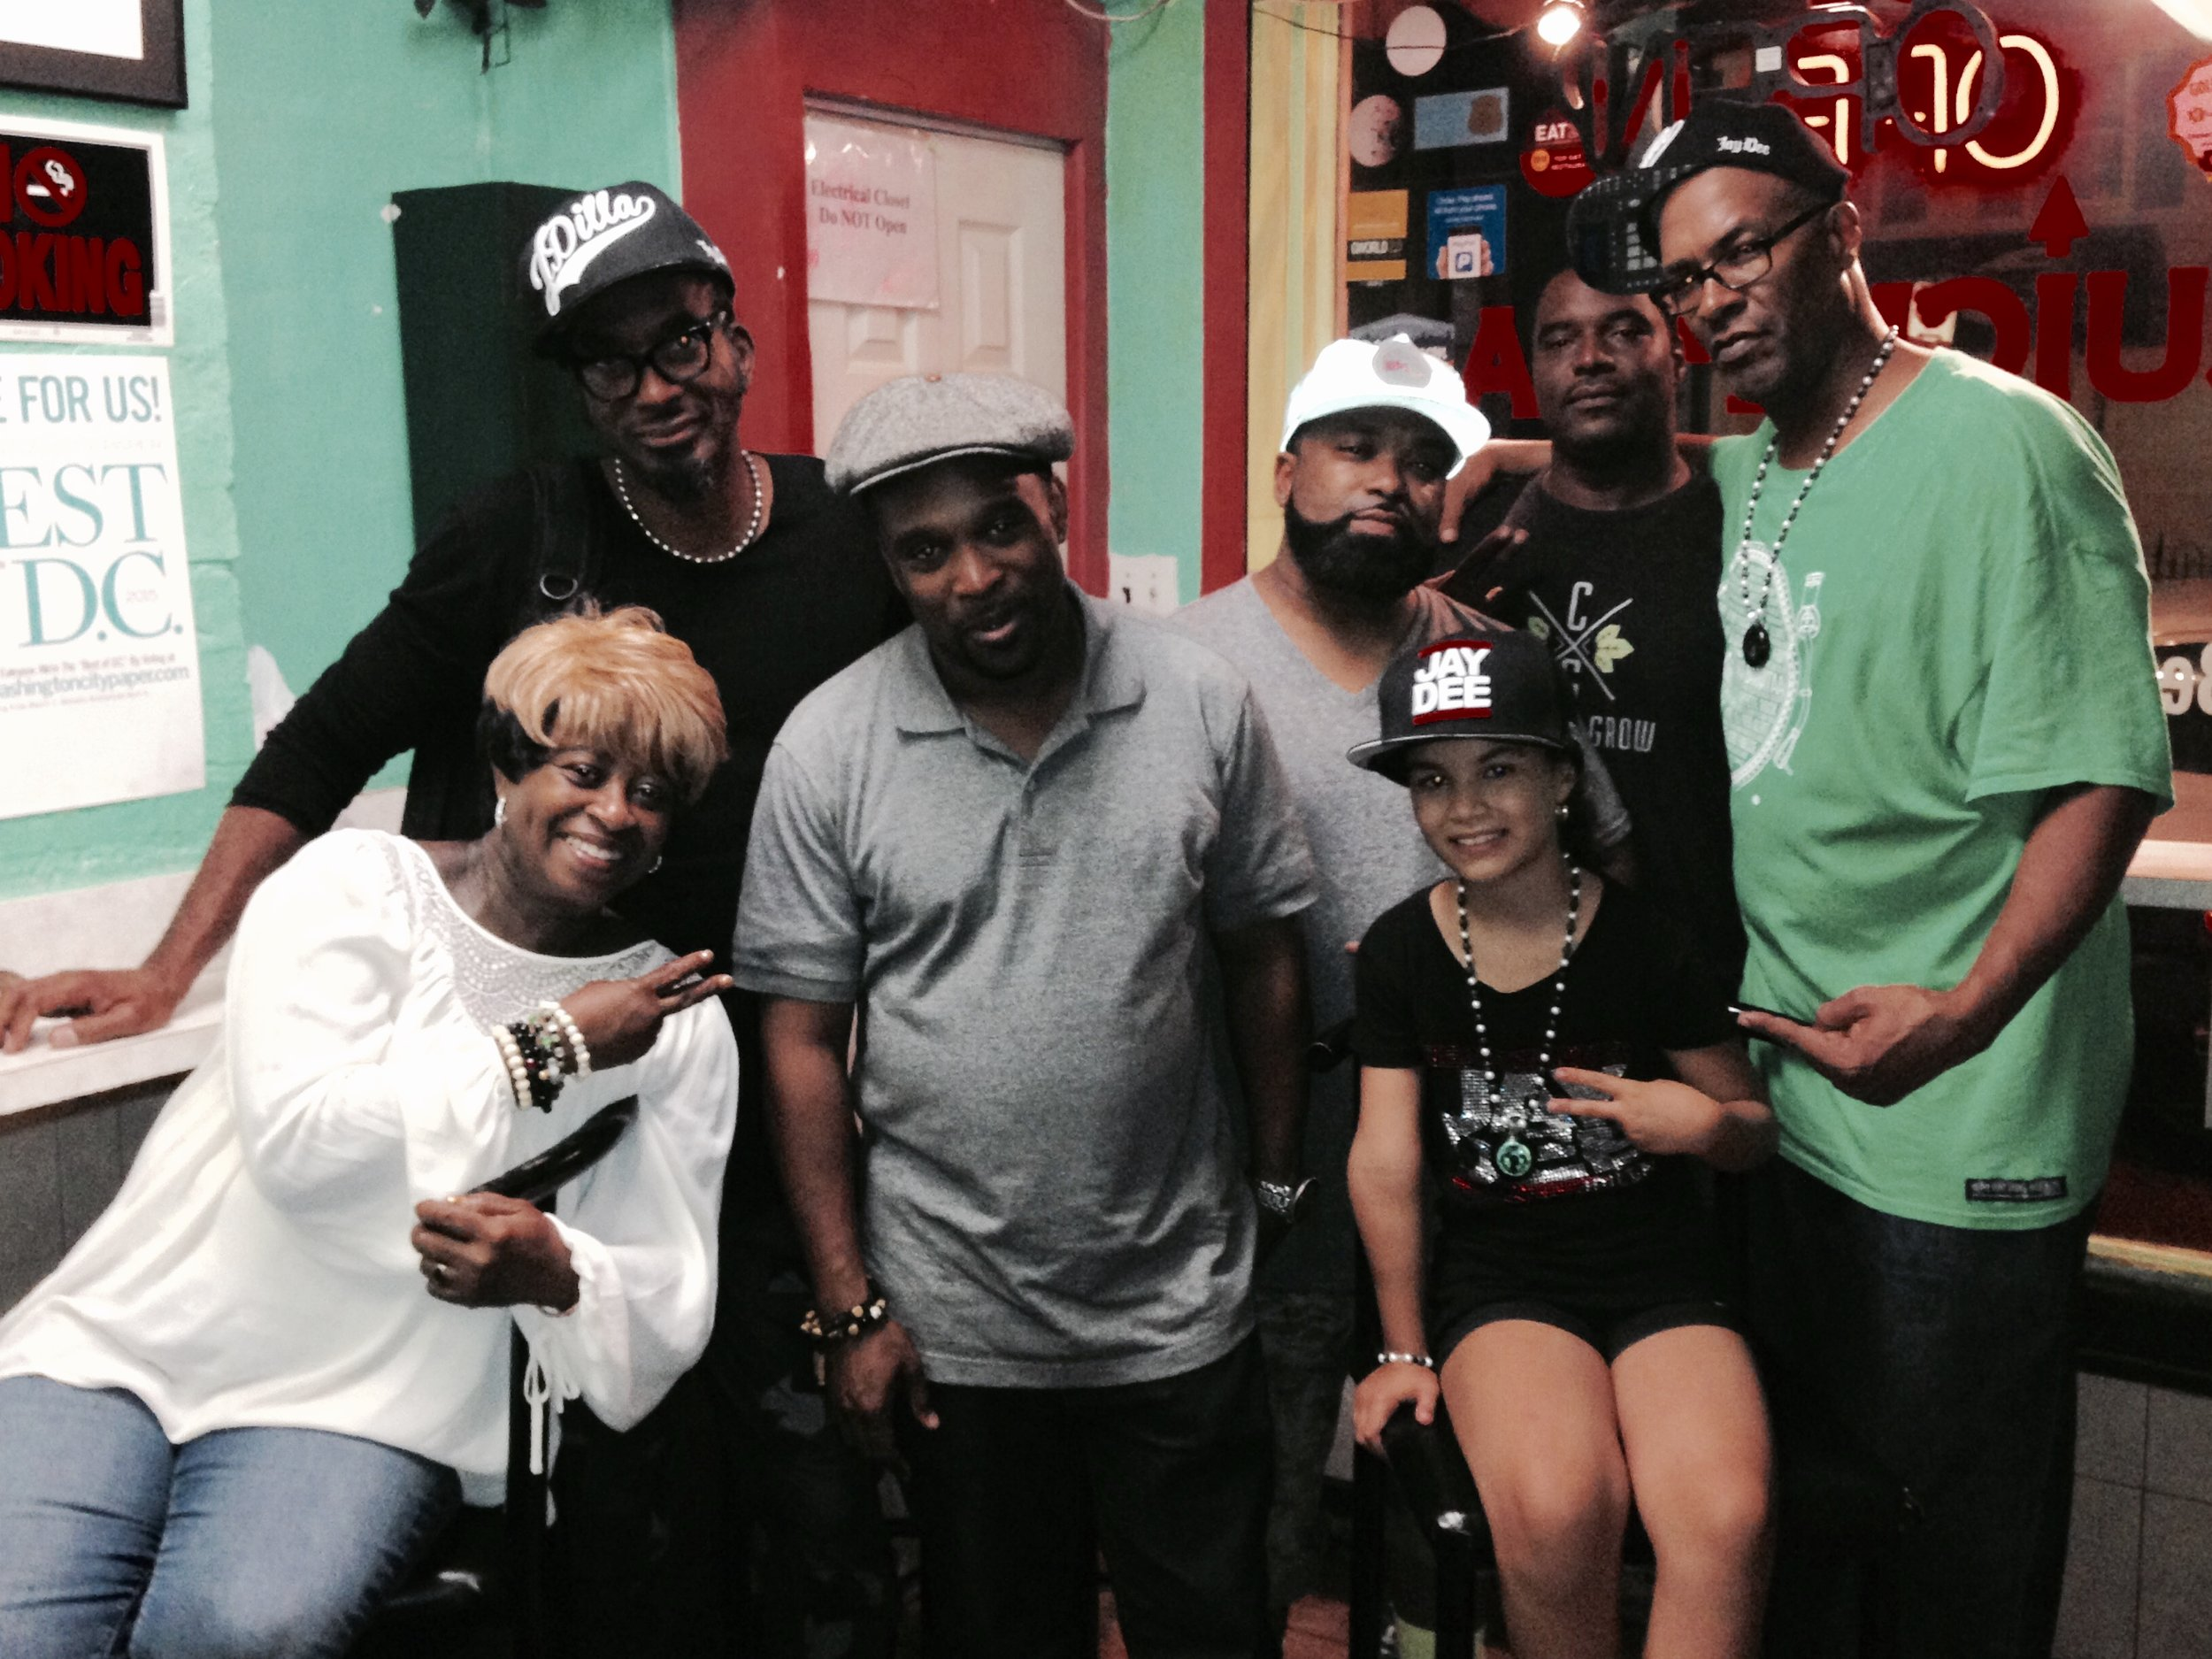 Lft to Rt, MaDukes, Amp Fidler, DJ Spinna, Gene, DJ Kool Flash, J Sands, and Bedouin.jpg